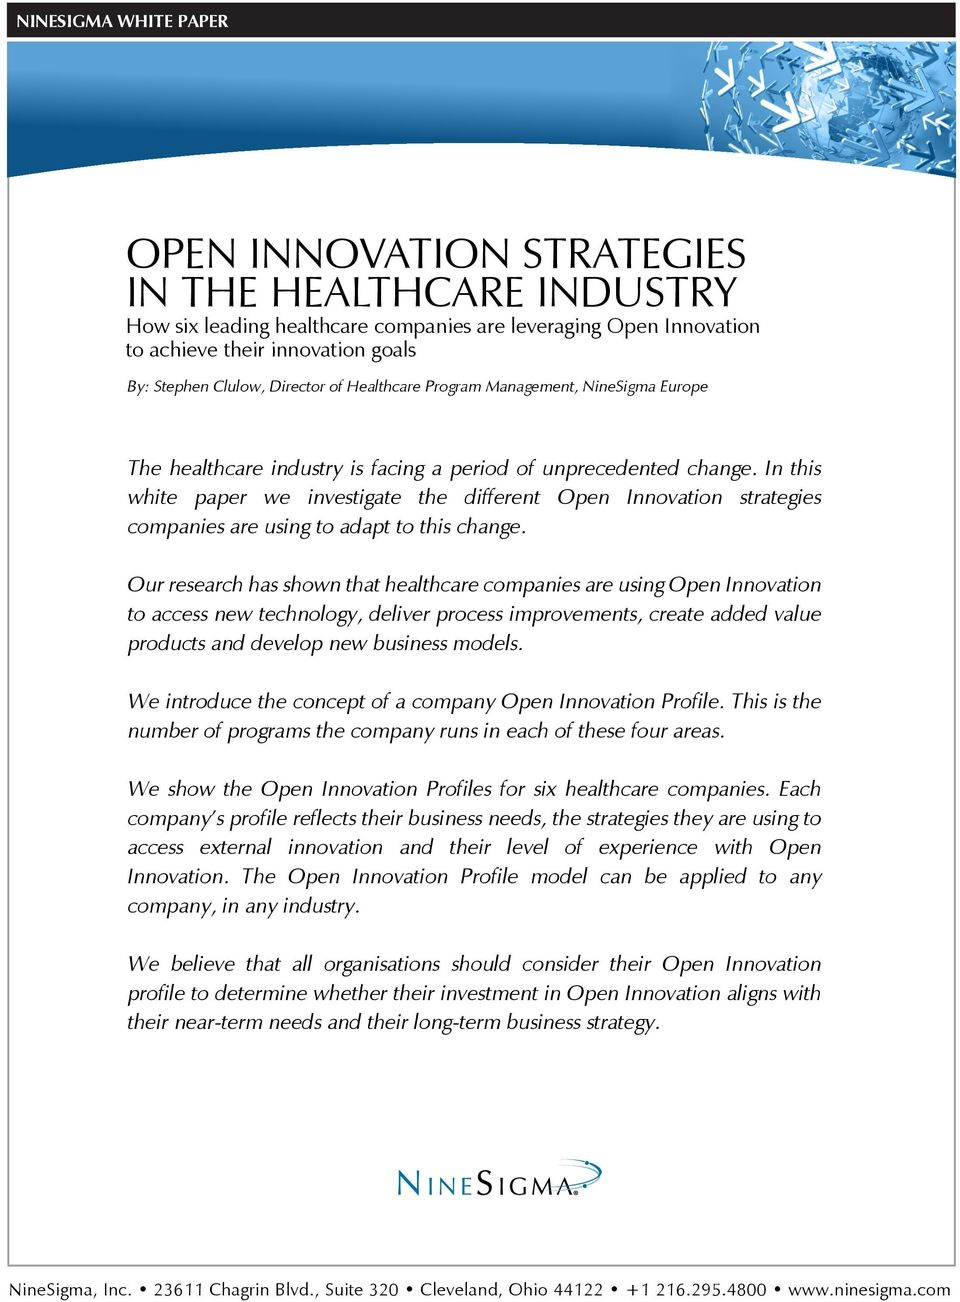 In this white paper we investigate the different Open Innovation strategies companies are using to adapt to this change.